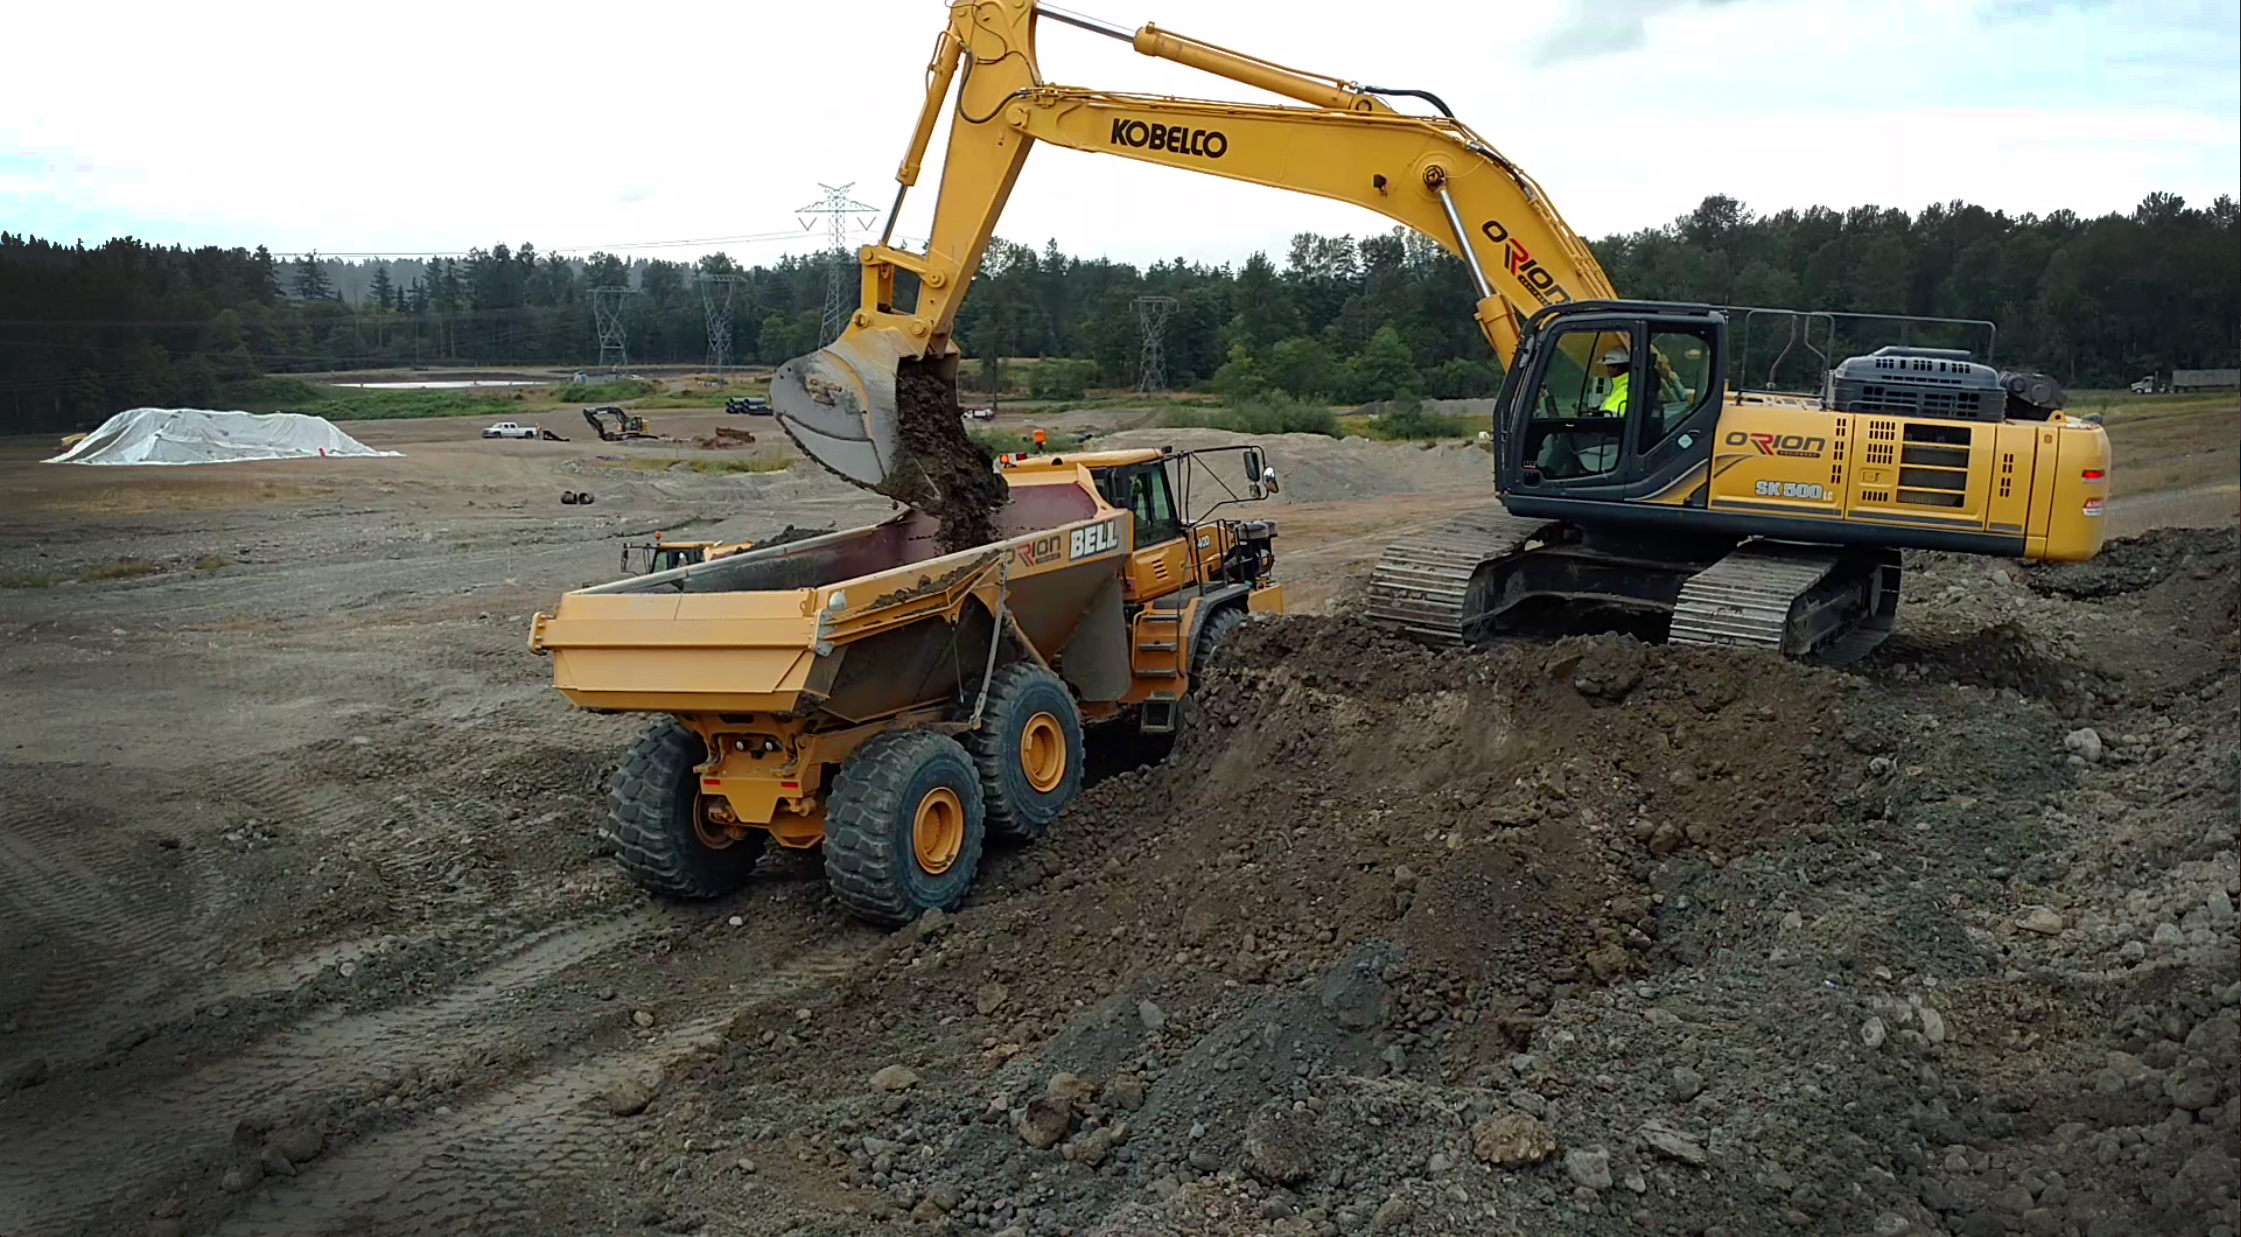 Kobelco excavators are built like no other | LECTURA Press